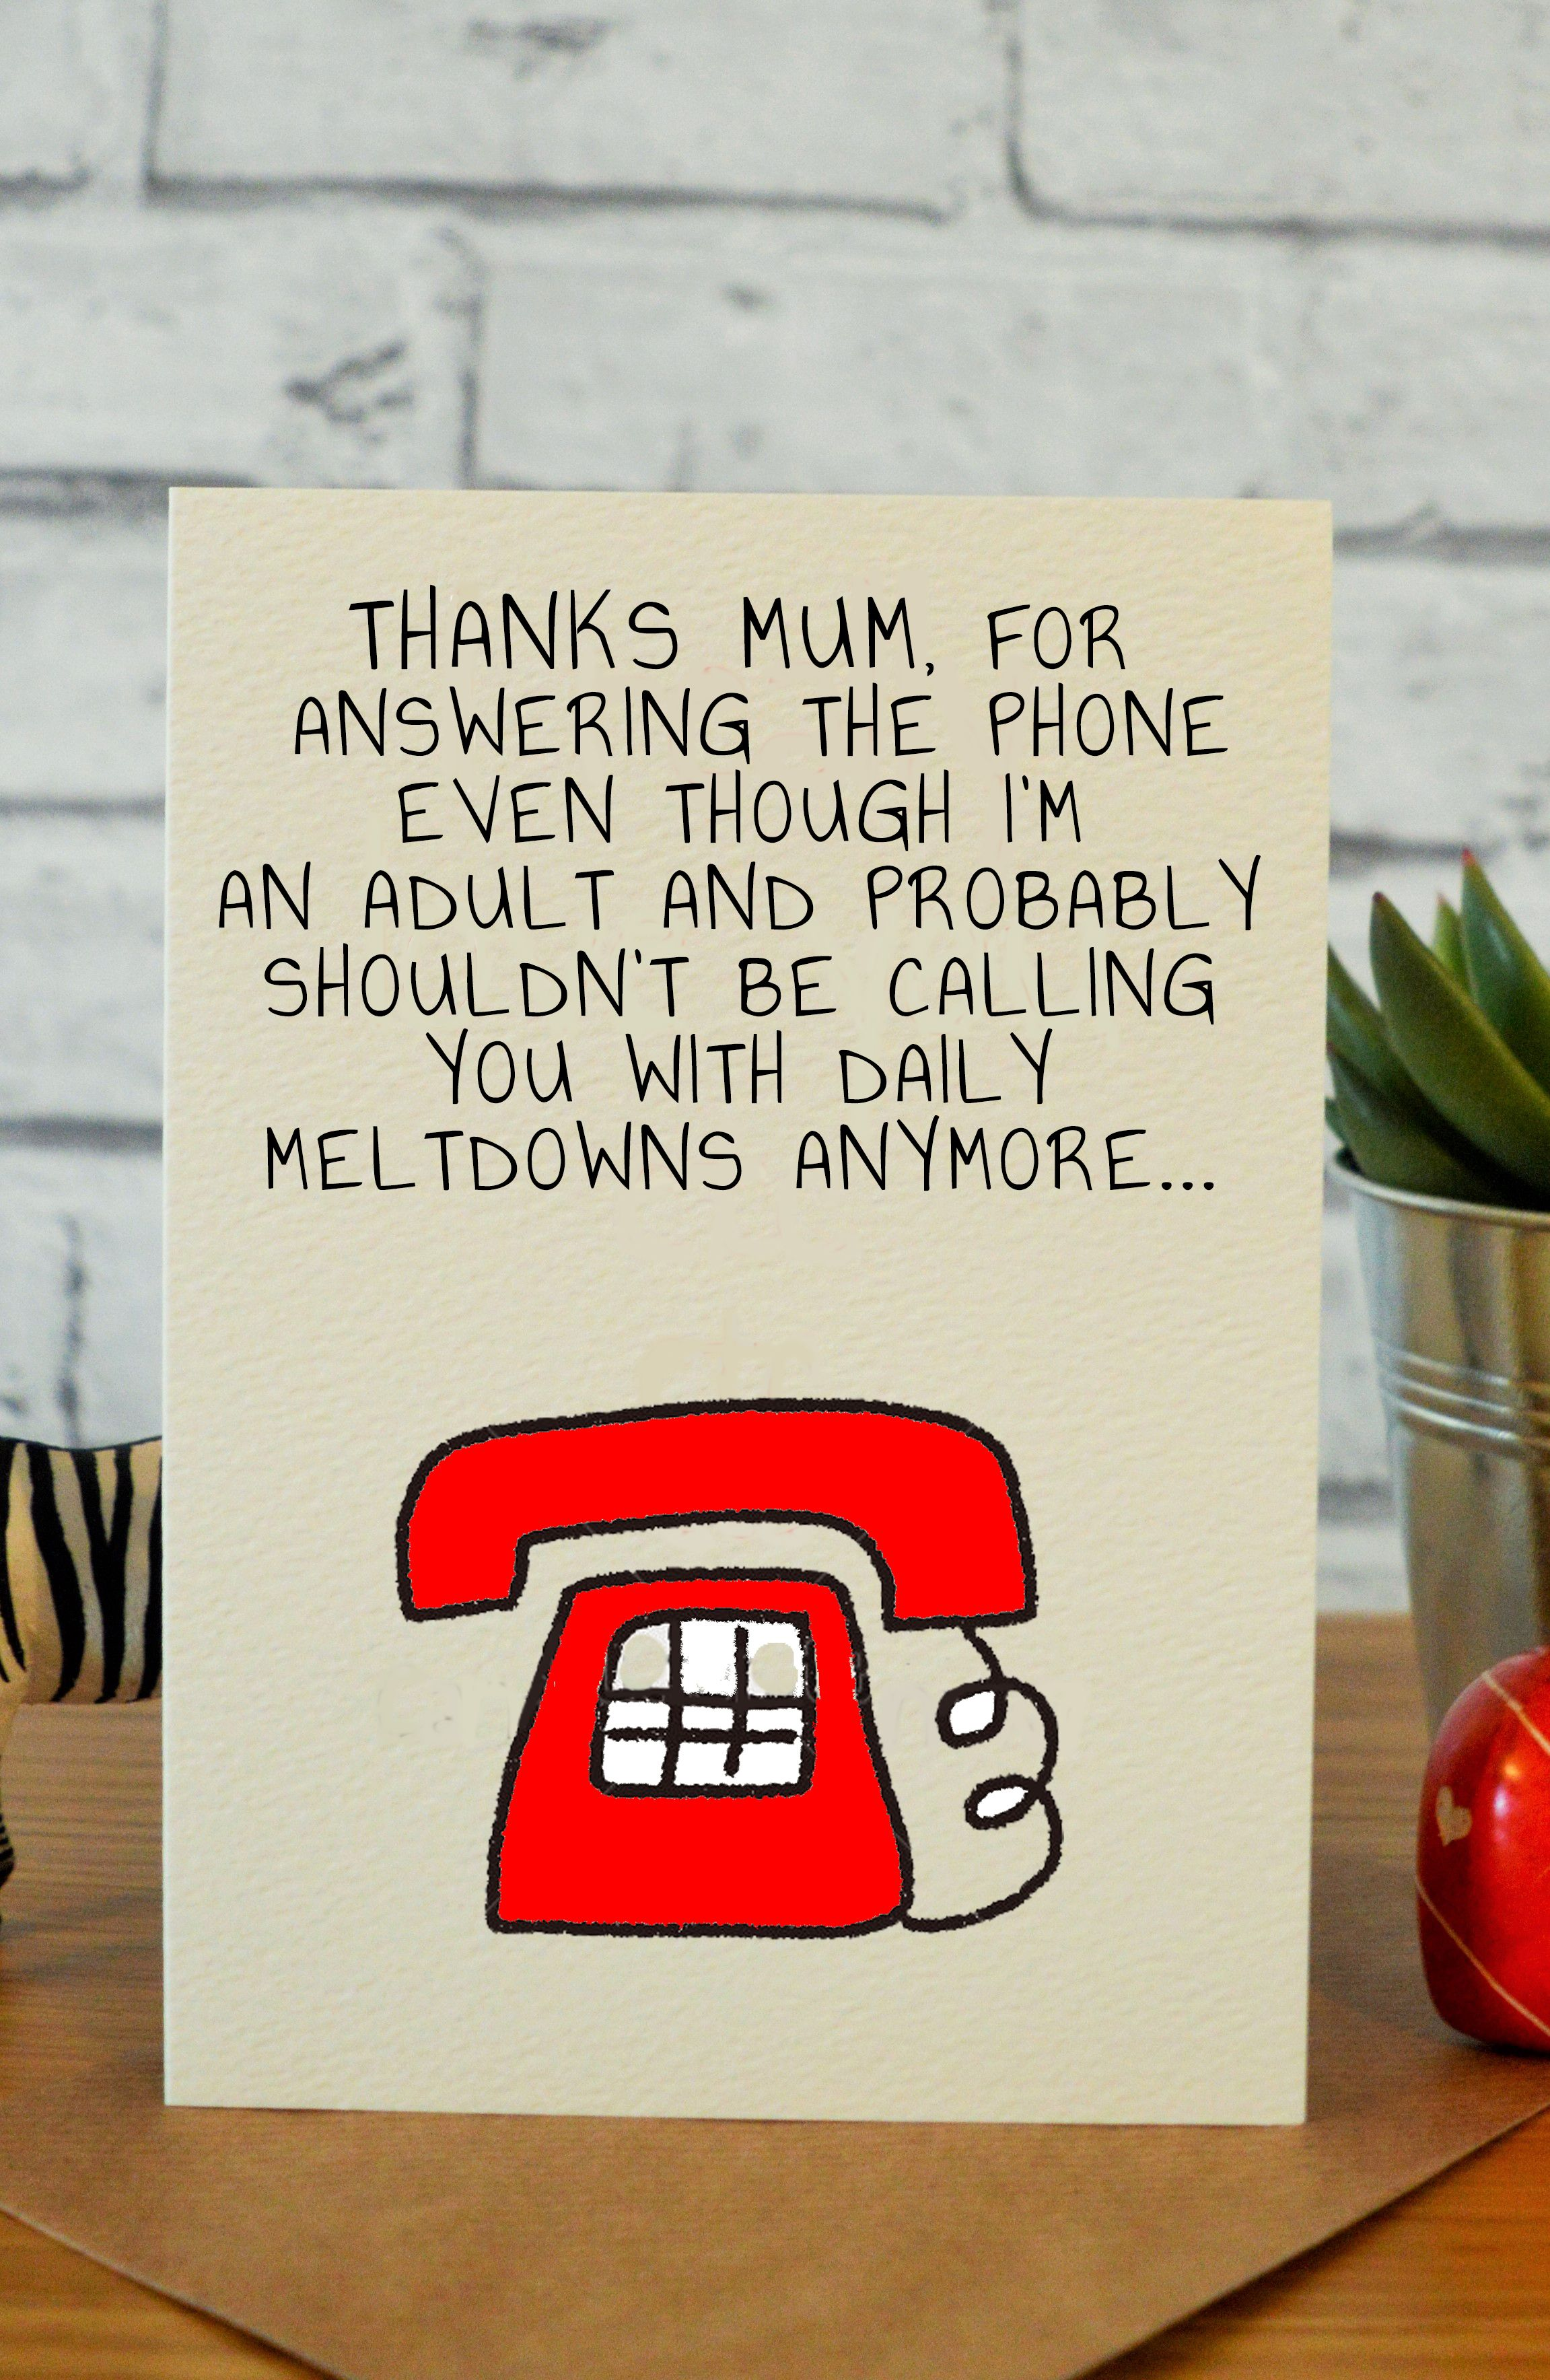 Answering The Phone Birthday Cards For Mom Birthday Cards For Mum Diy Gifts For Dad